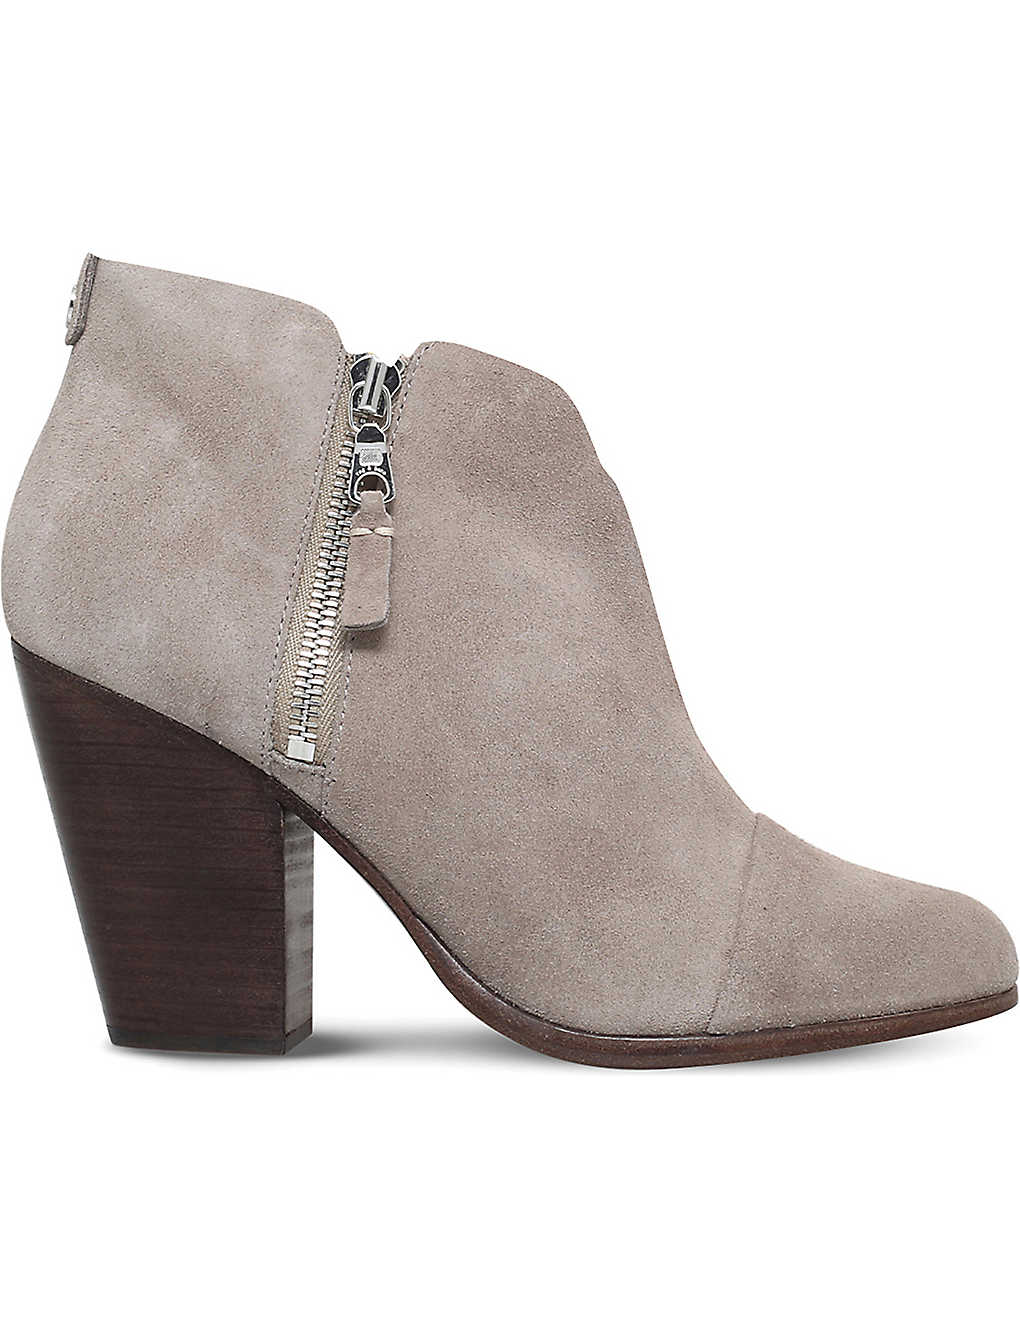 34baf12767 RAG AND BONE - Margot suede heeled ankle boots | Selfridges.com